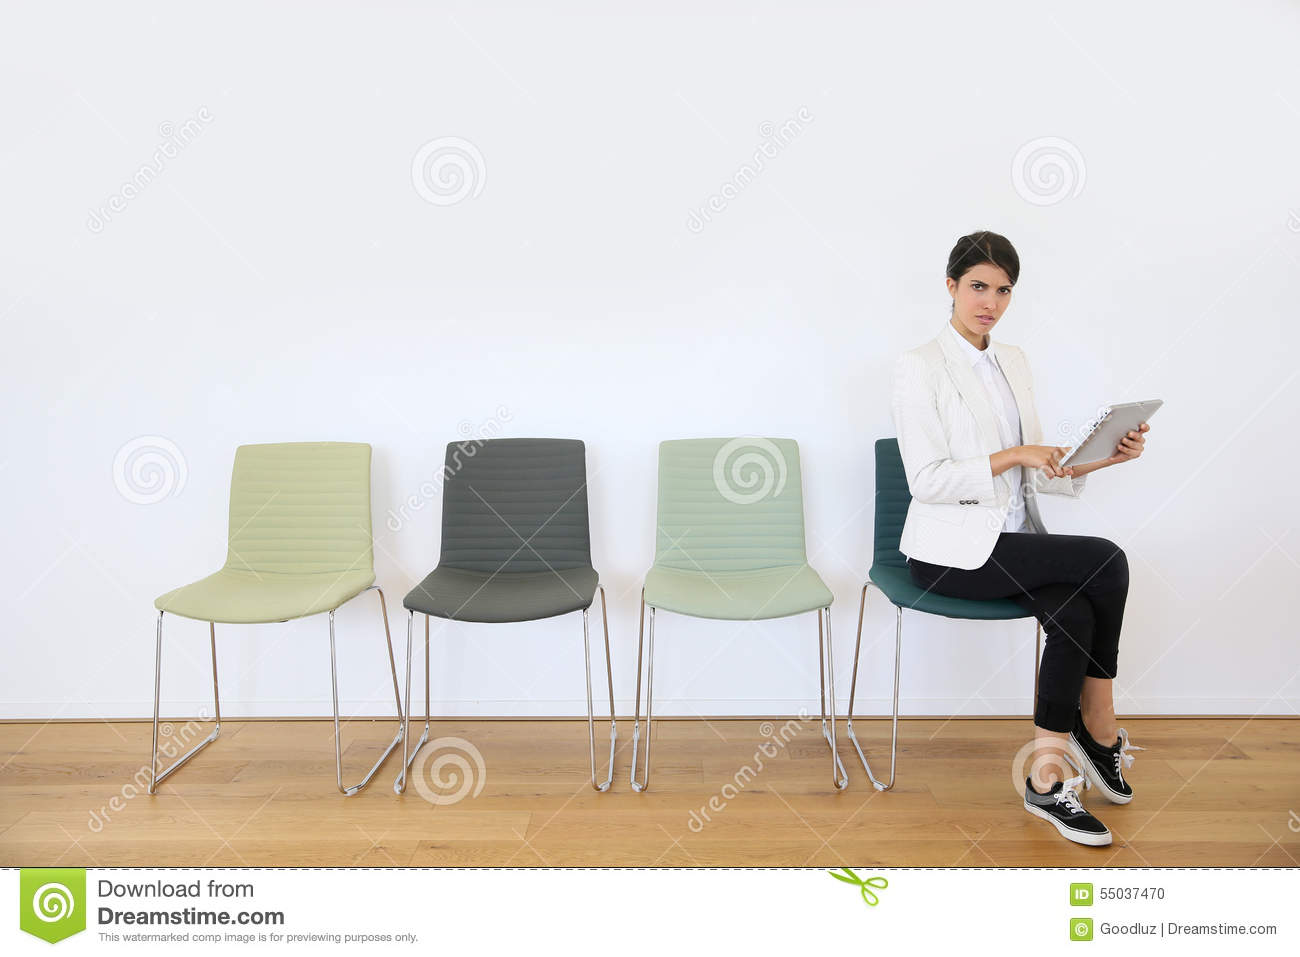 Woman with tablet in waiting room